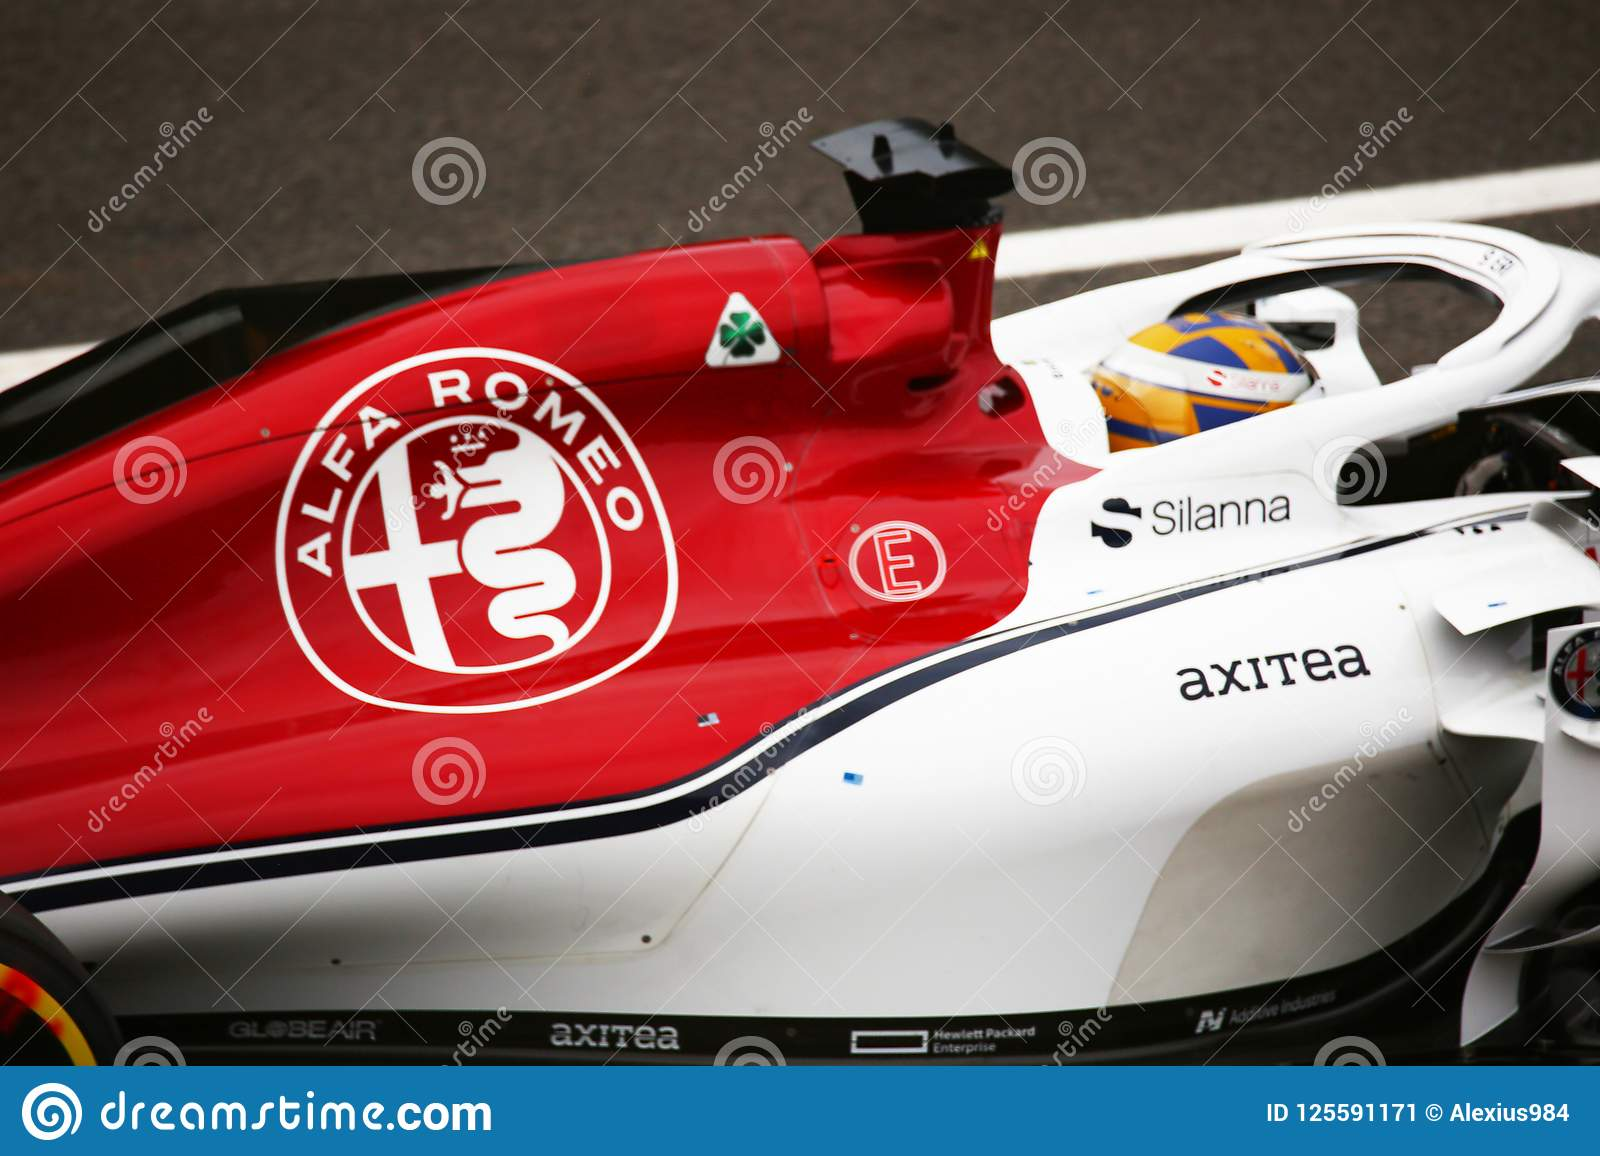 Detail Of Alfa Romeo Driven By Ericsson In Monza 2018